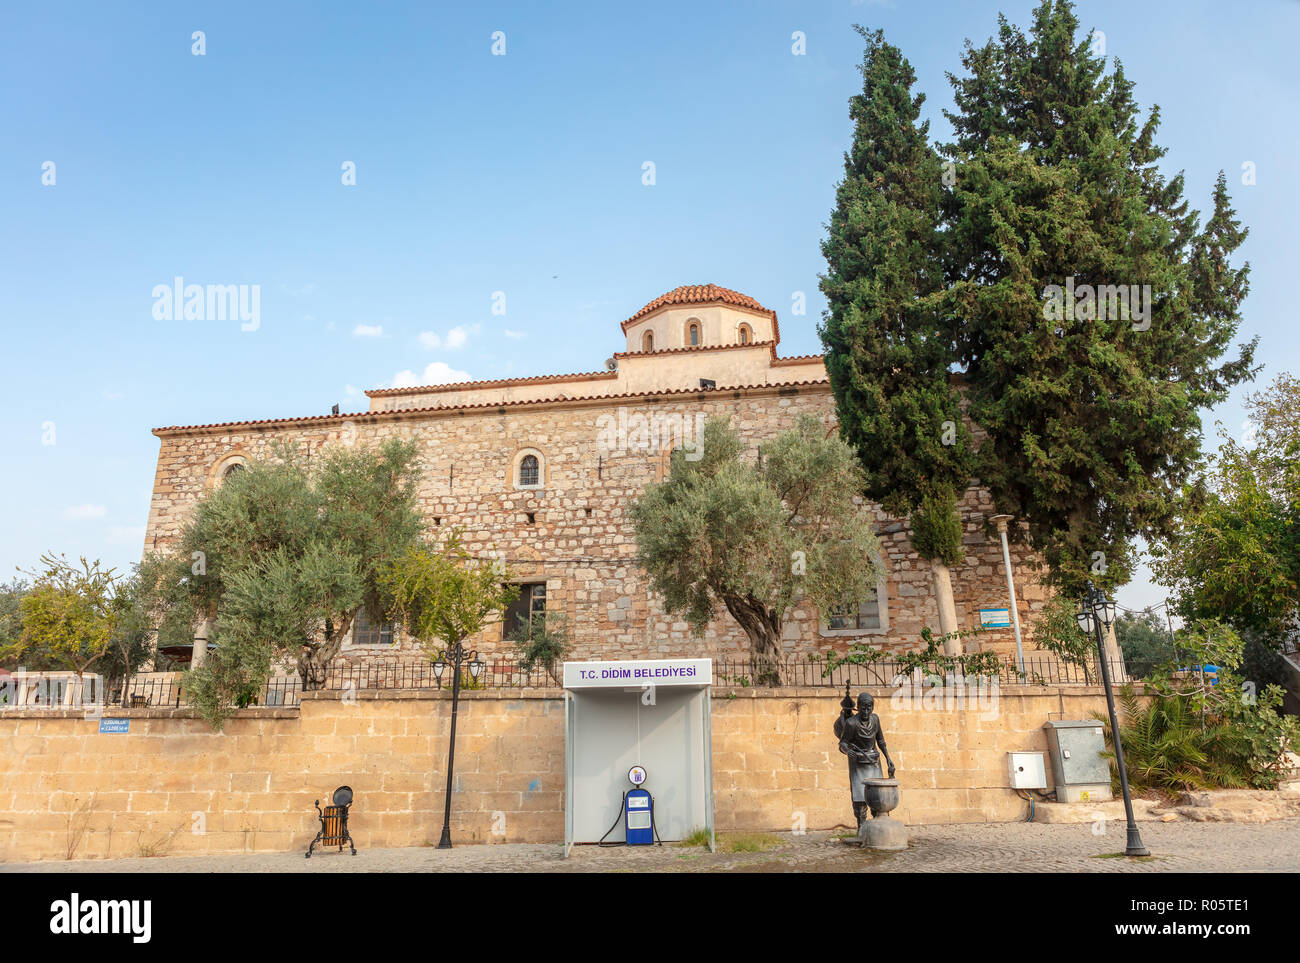 Street view of historic mosque in Dydim near the Temple of Apollo with electric mobility charging station and statue of water seller. - Stock Image